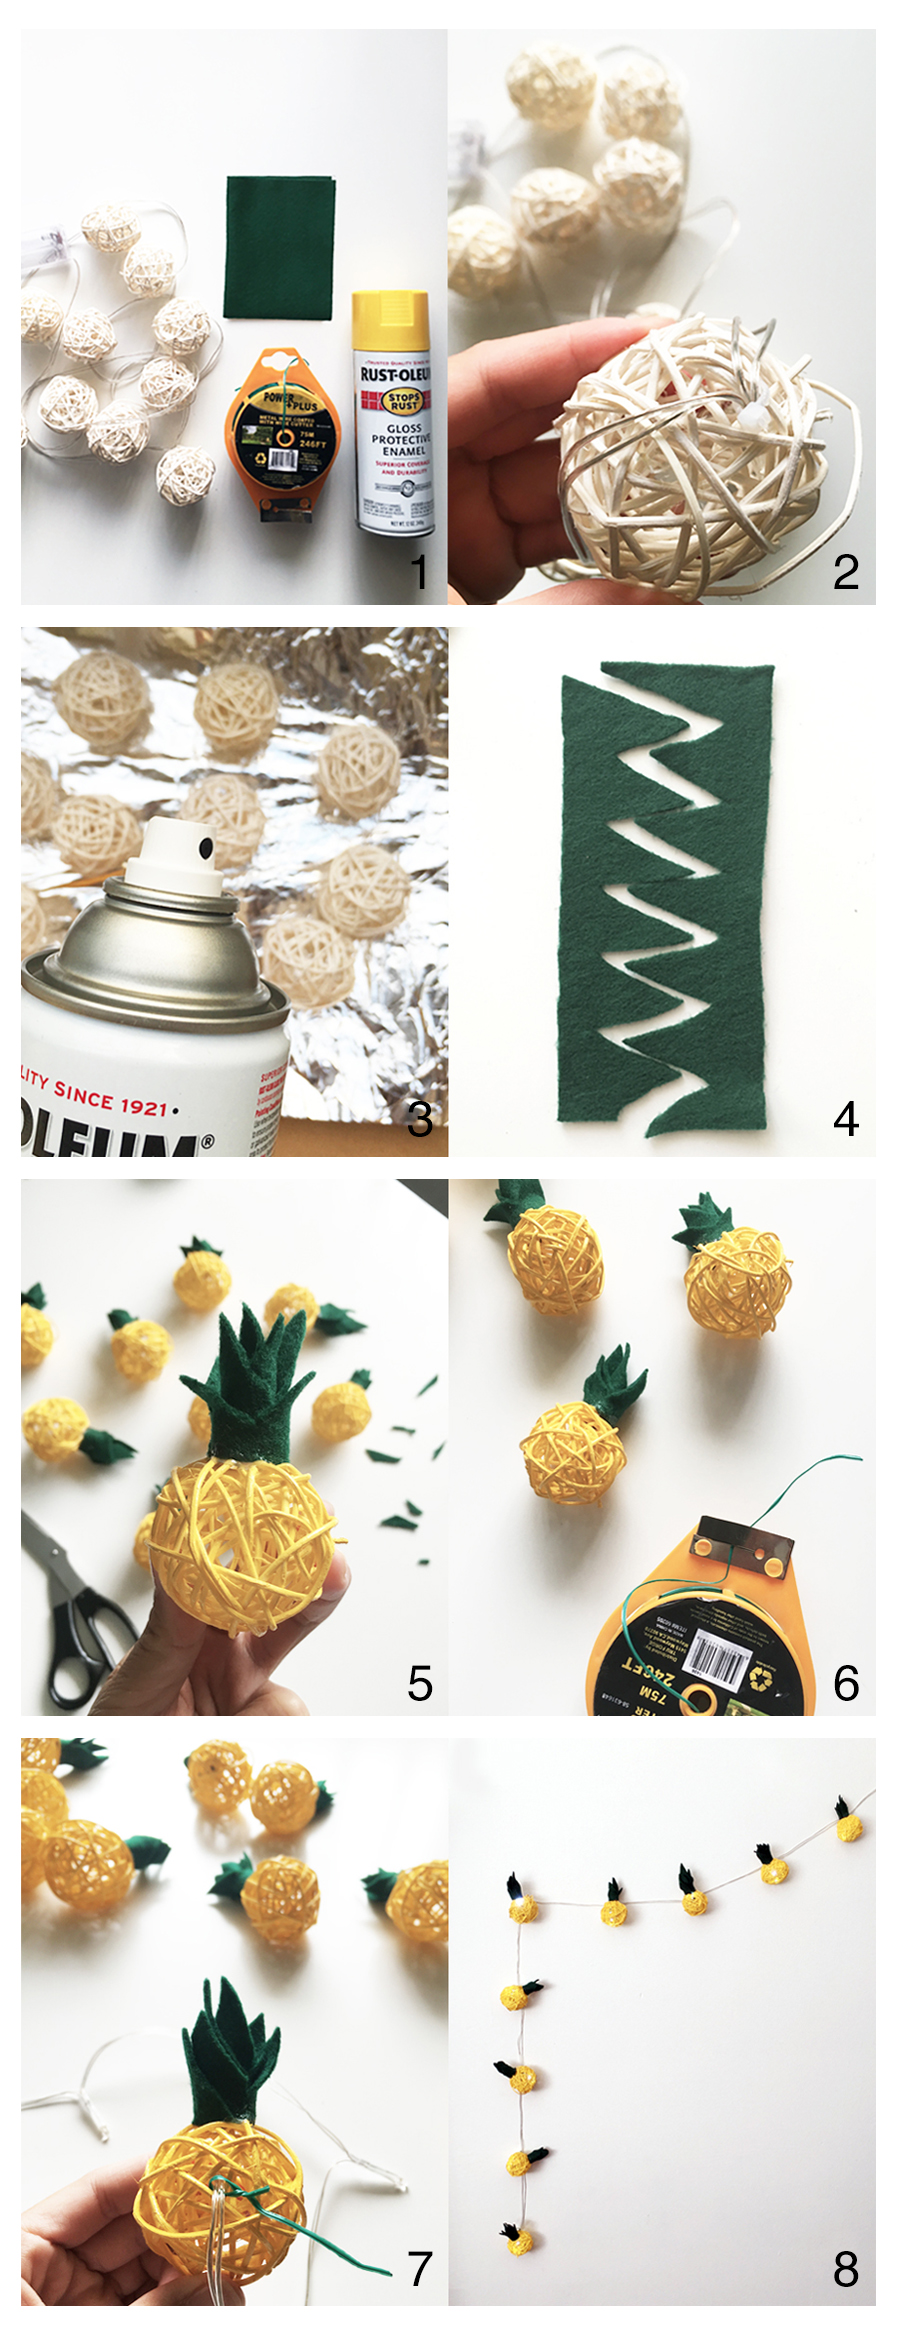 diy-pineapple-string-lights-drawntodiy-03